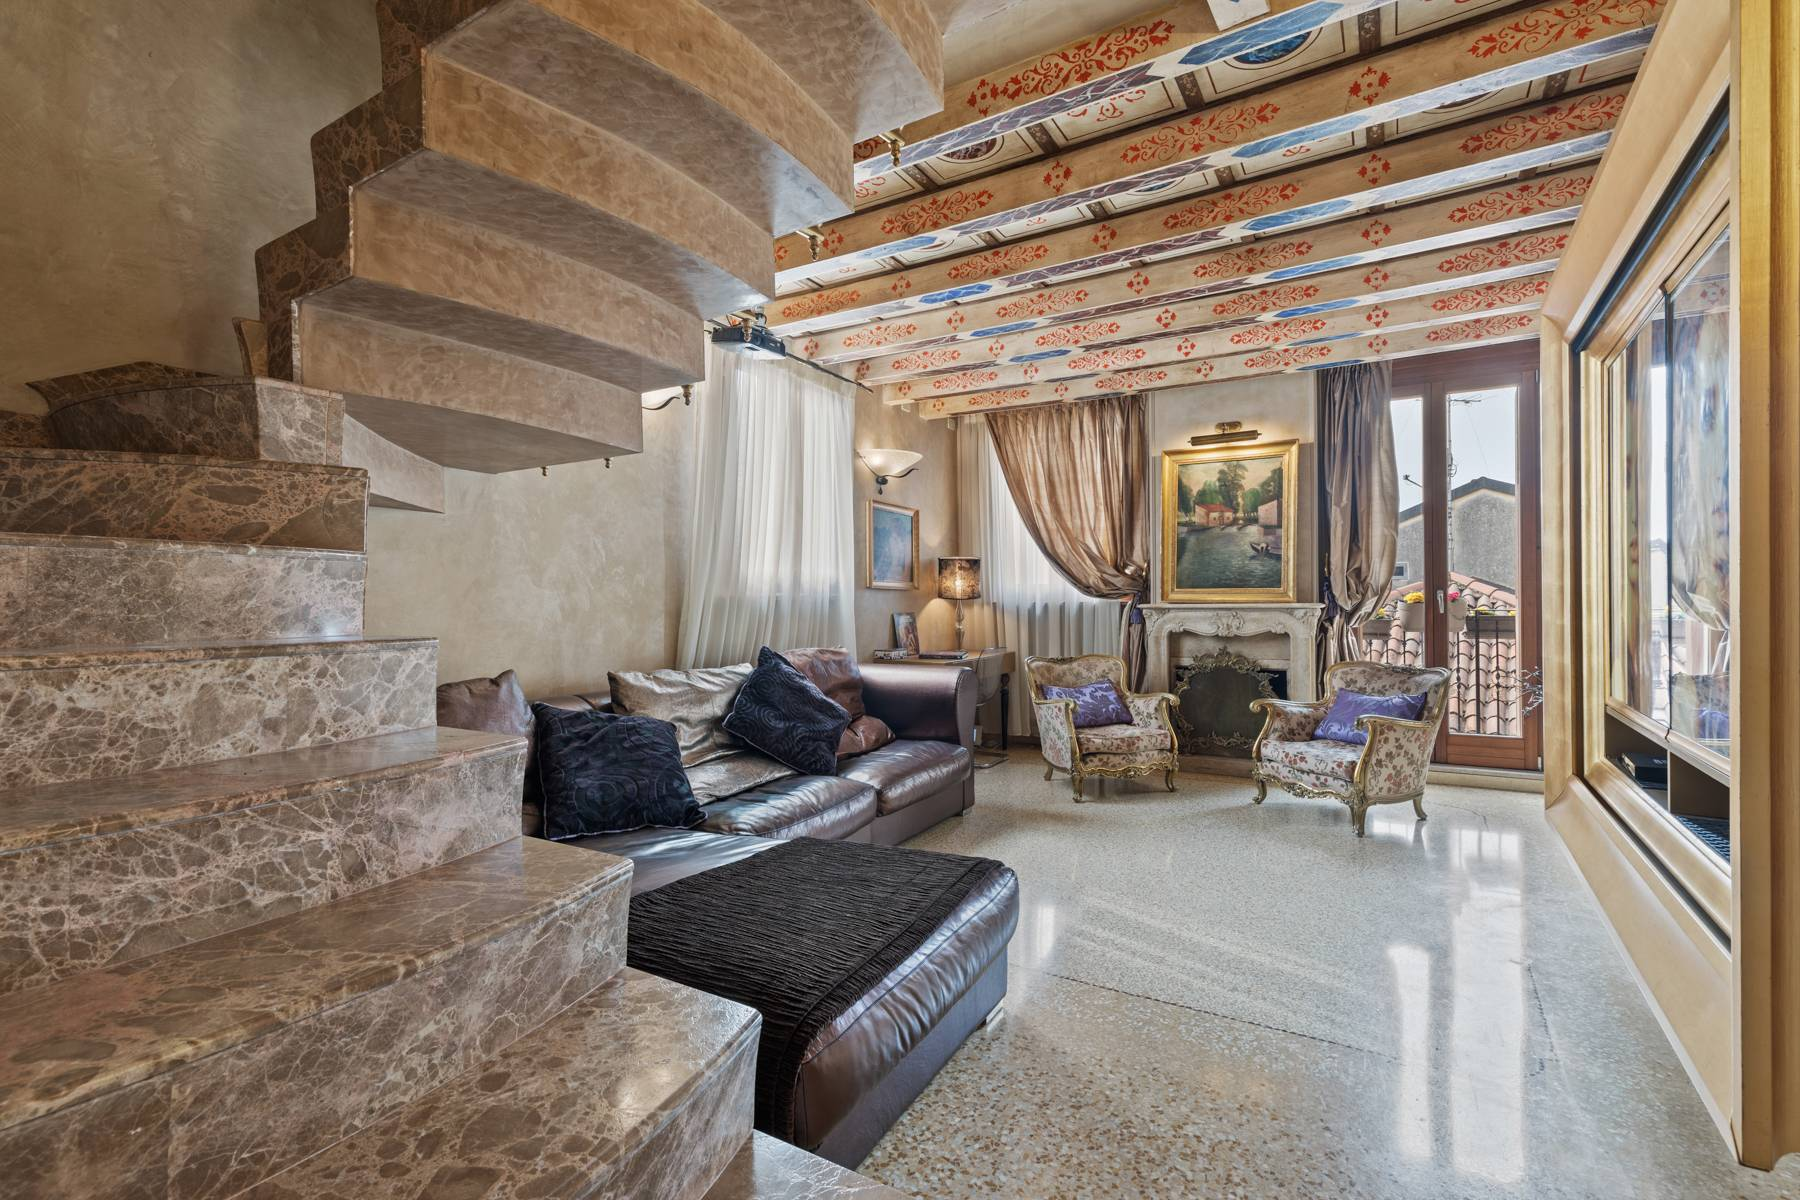 Elegant apartment in the heart of Verona on the corner of Via Mazzini and Piazza Erbe - 1